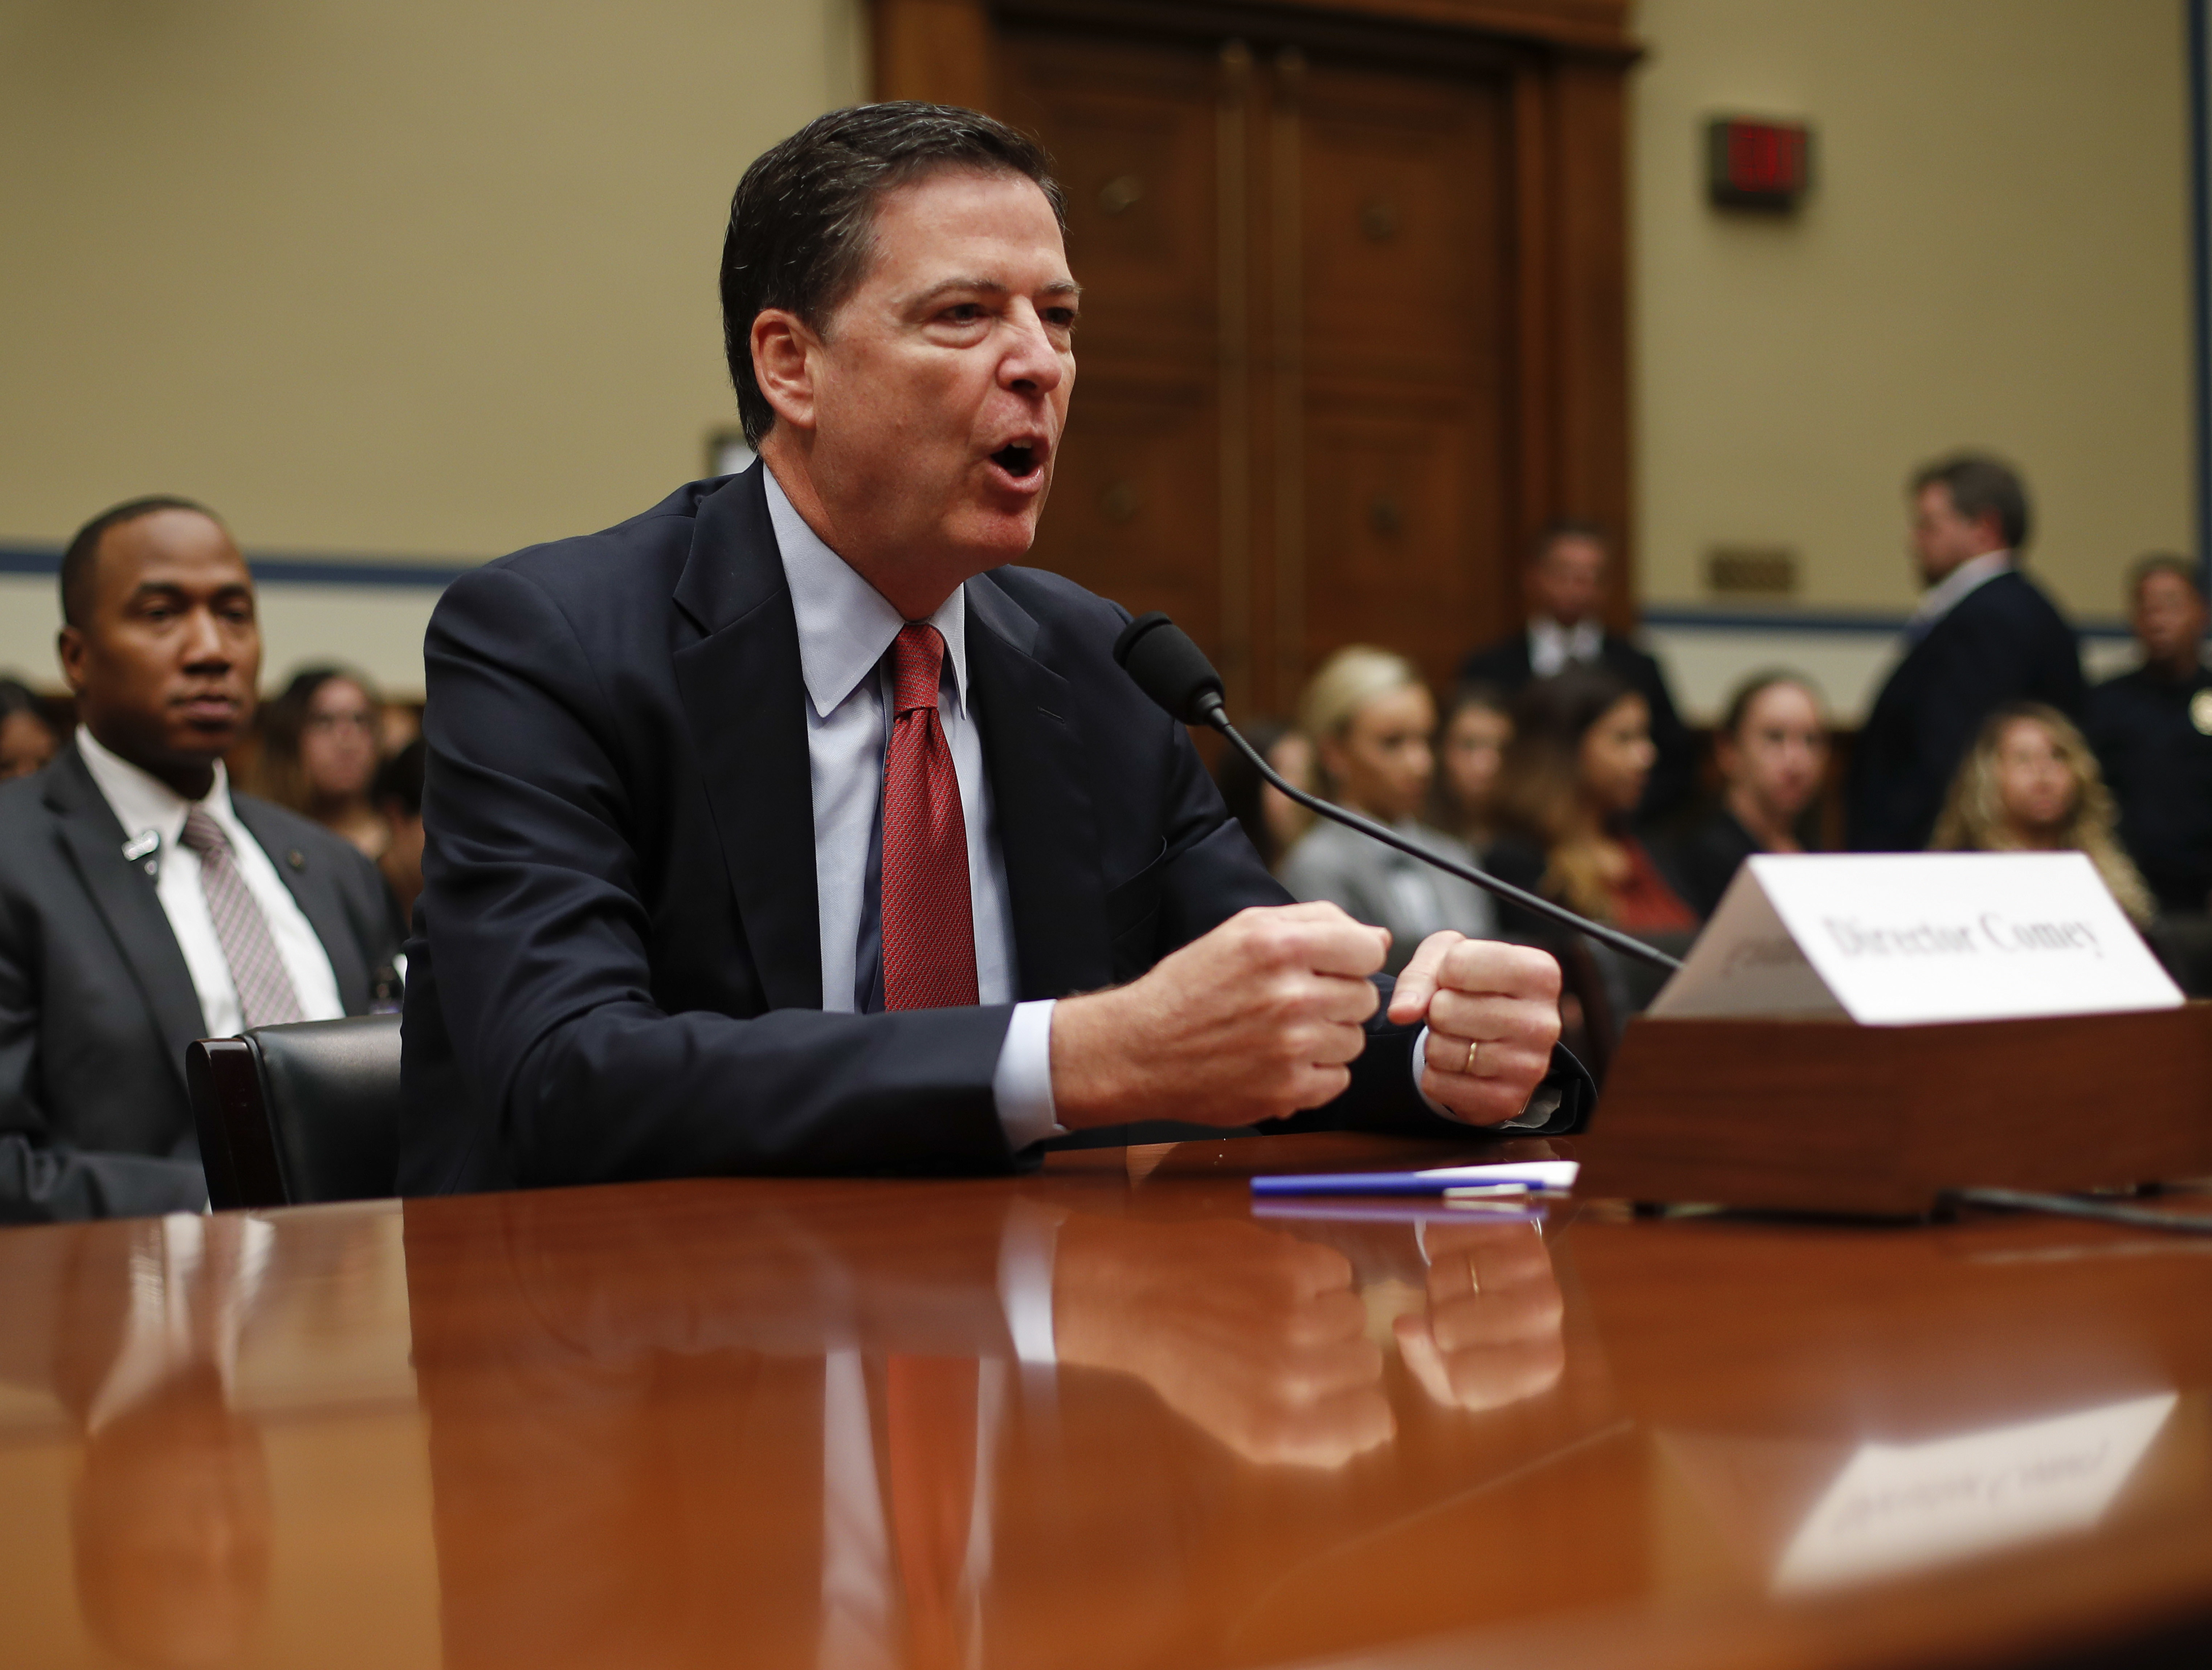 Report: Democrats 'Outraged' With Comey After Secret House Briefing